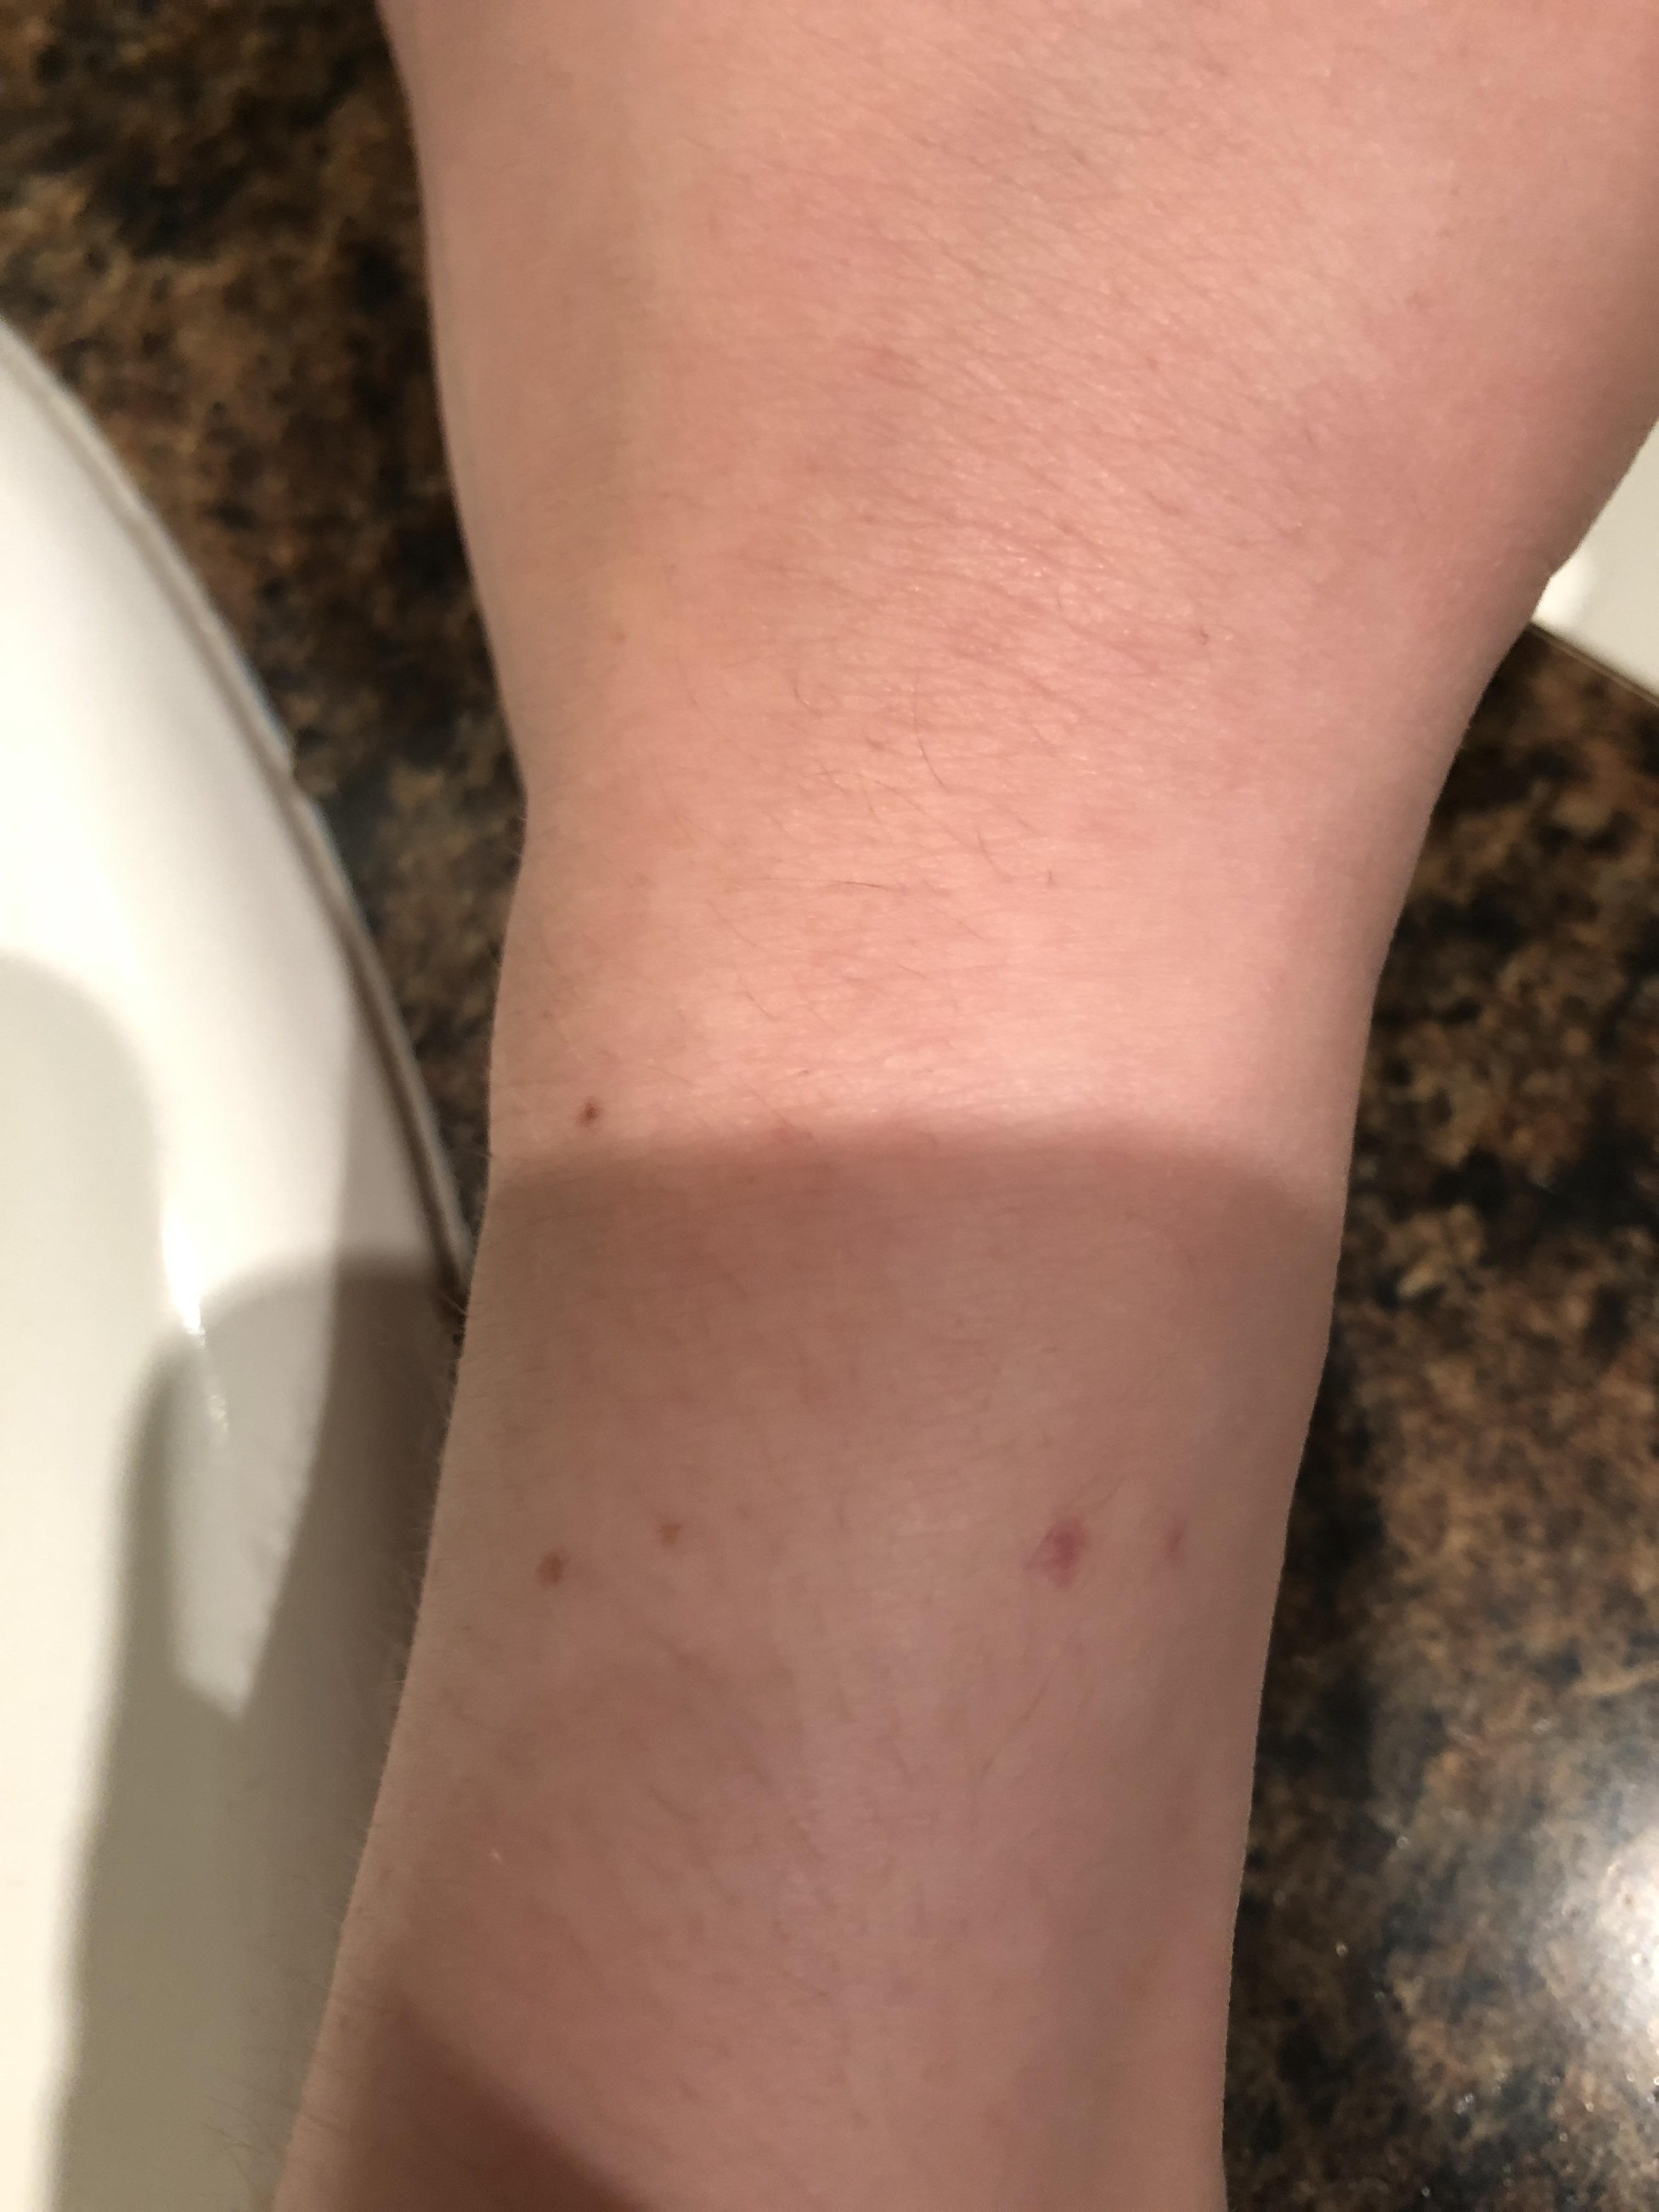 The marks from my watch are almost identical to the two ...